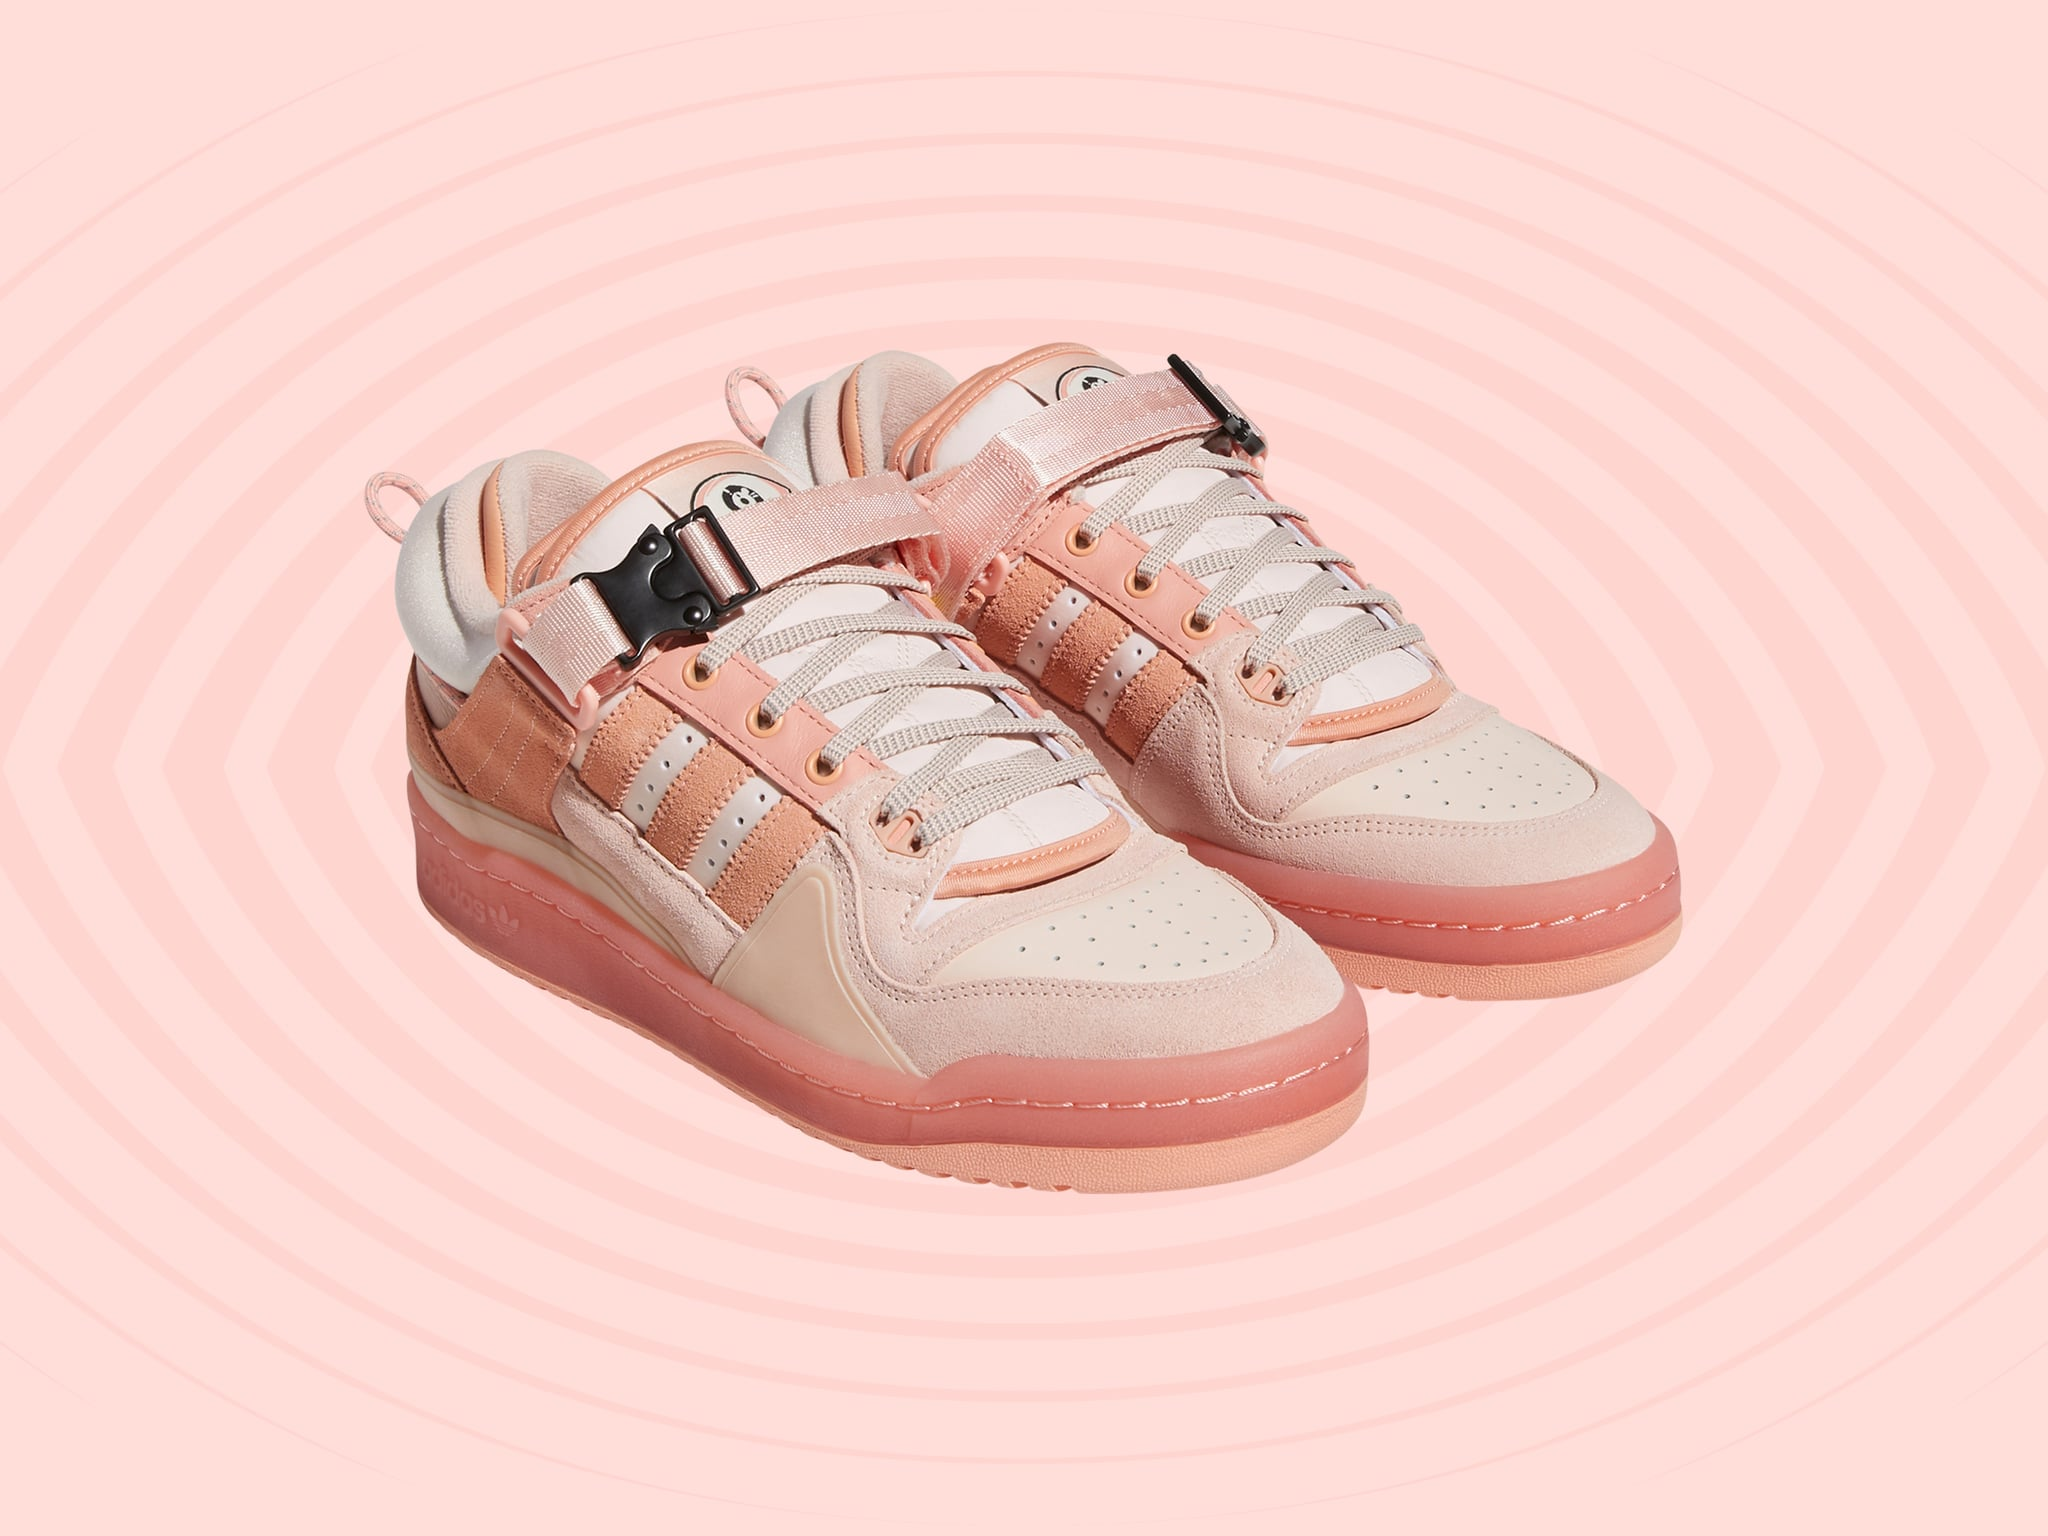 How to Buy Bad Bunny and Adidas's Easter Egg Sneakers | POPSUGAR ...